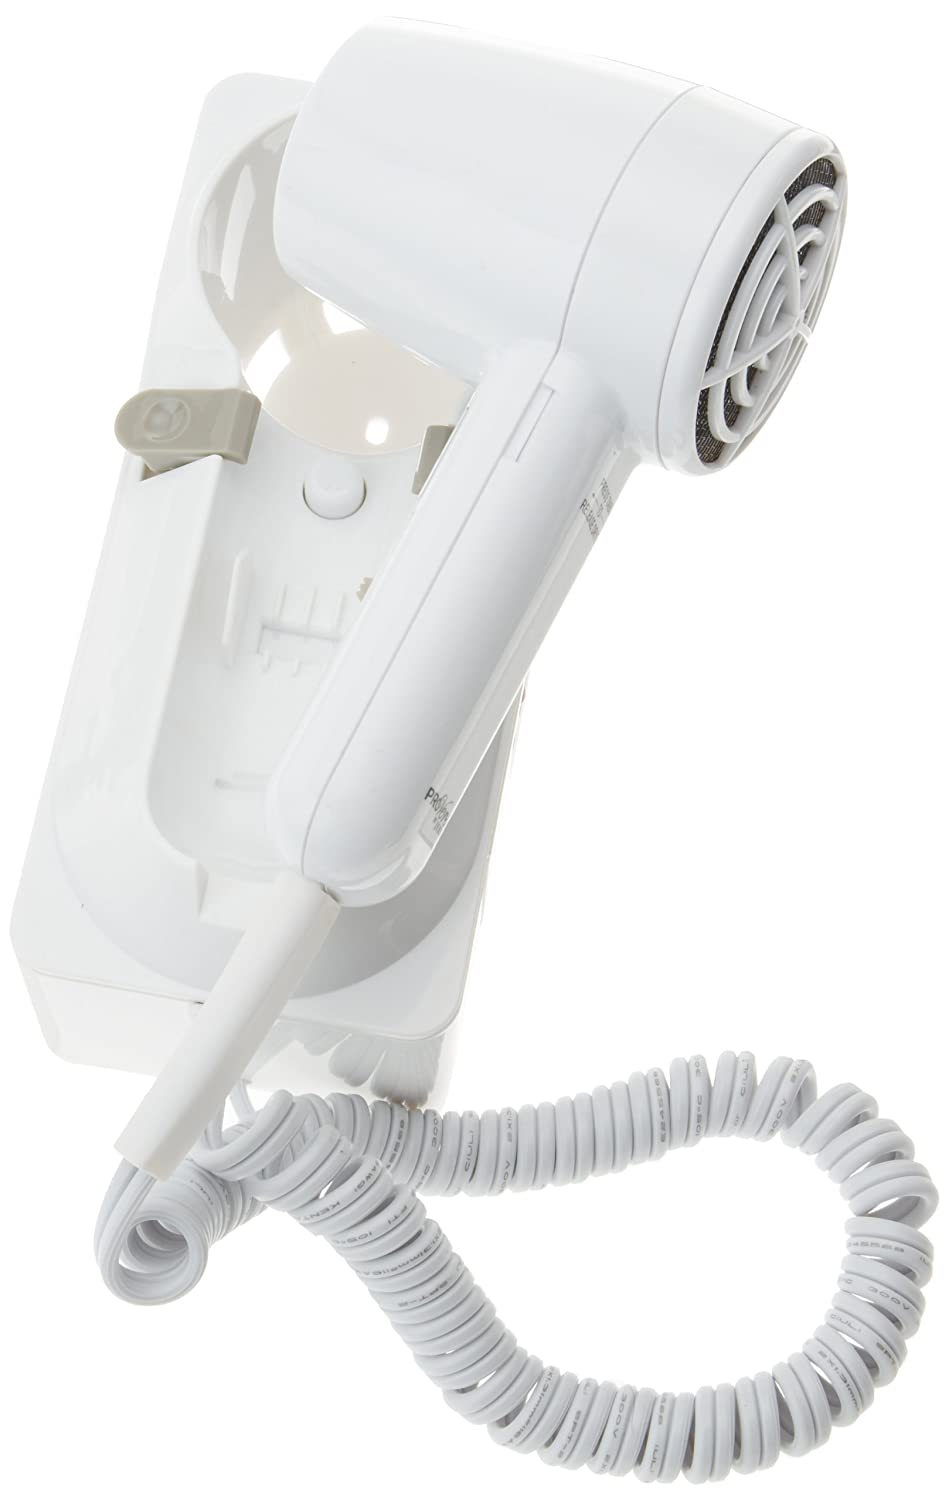 ProVersa JWM6CF Wall Caddy Hair Dryer with 2-Speed and 3-Heat Settings, 1600-Watts, White Finish